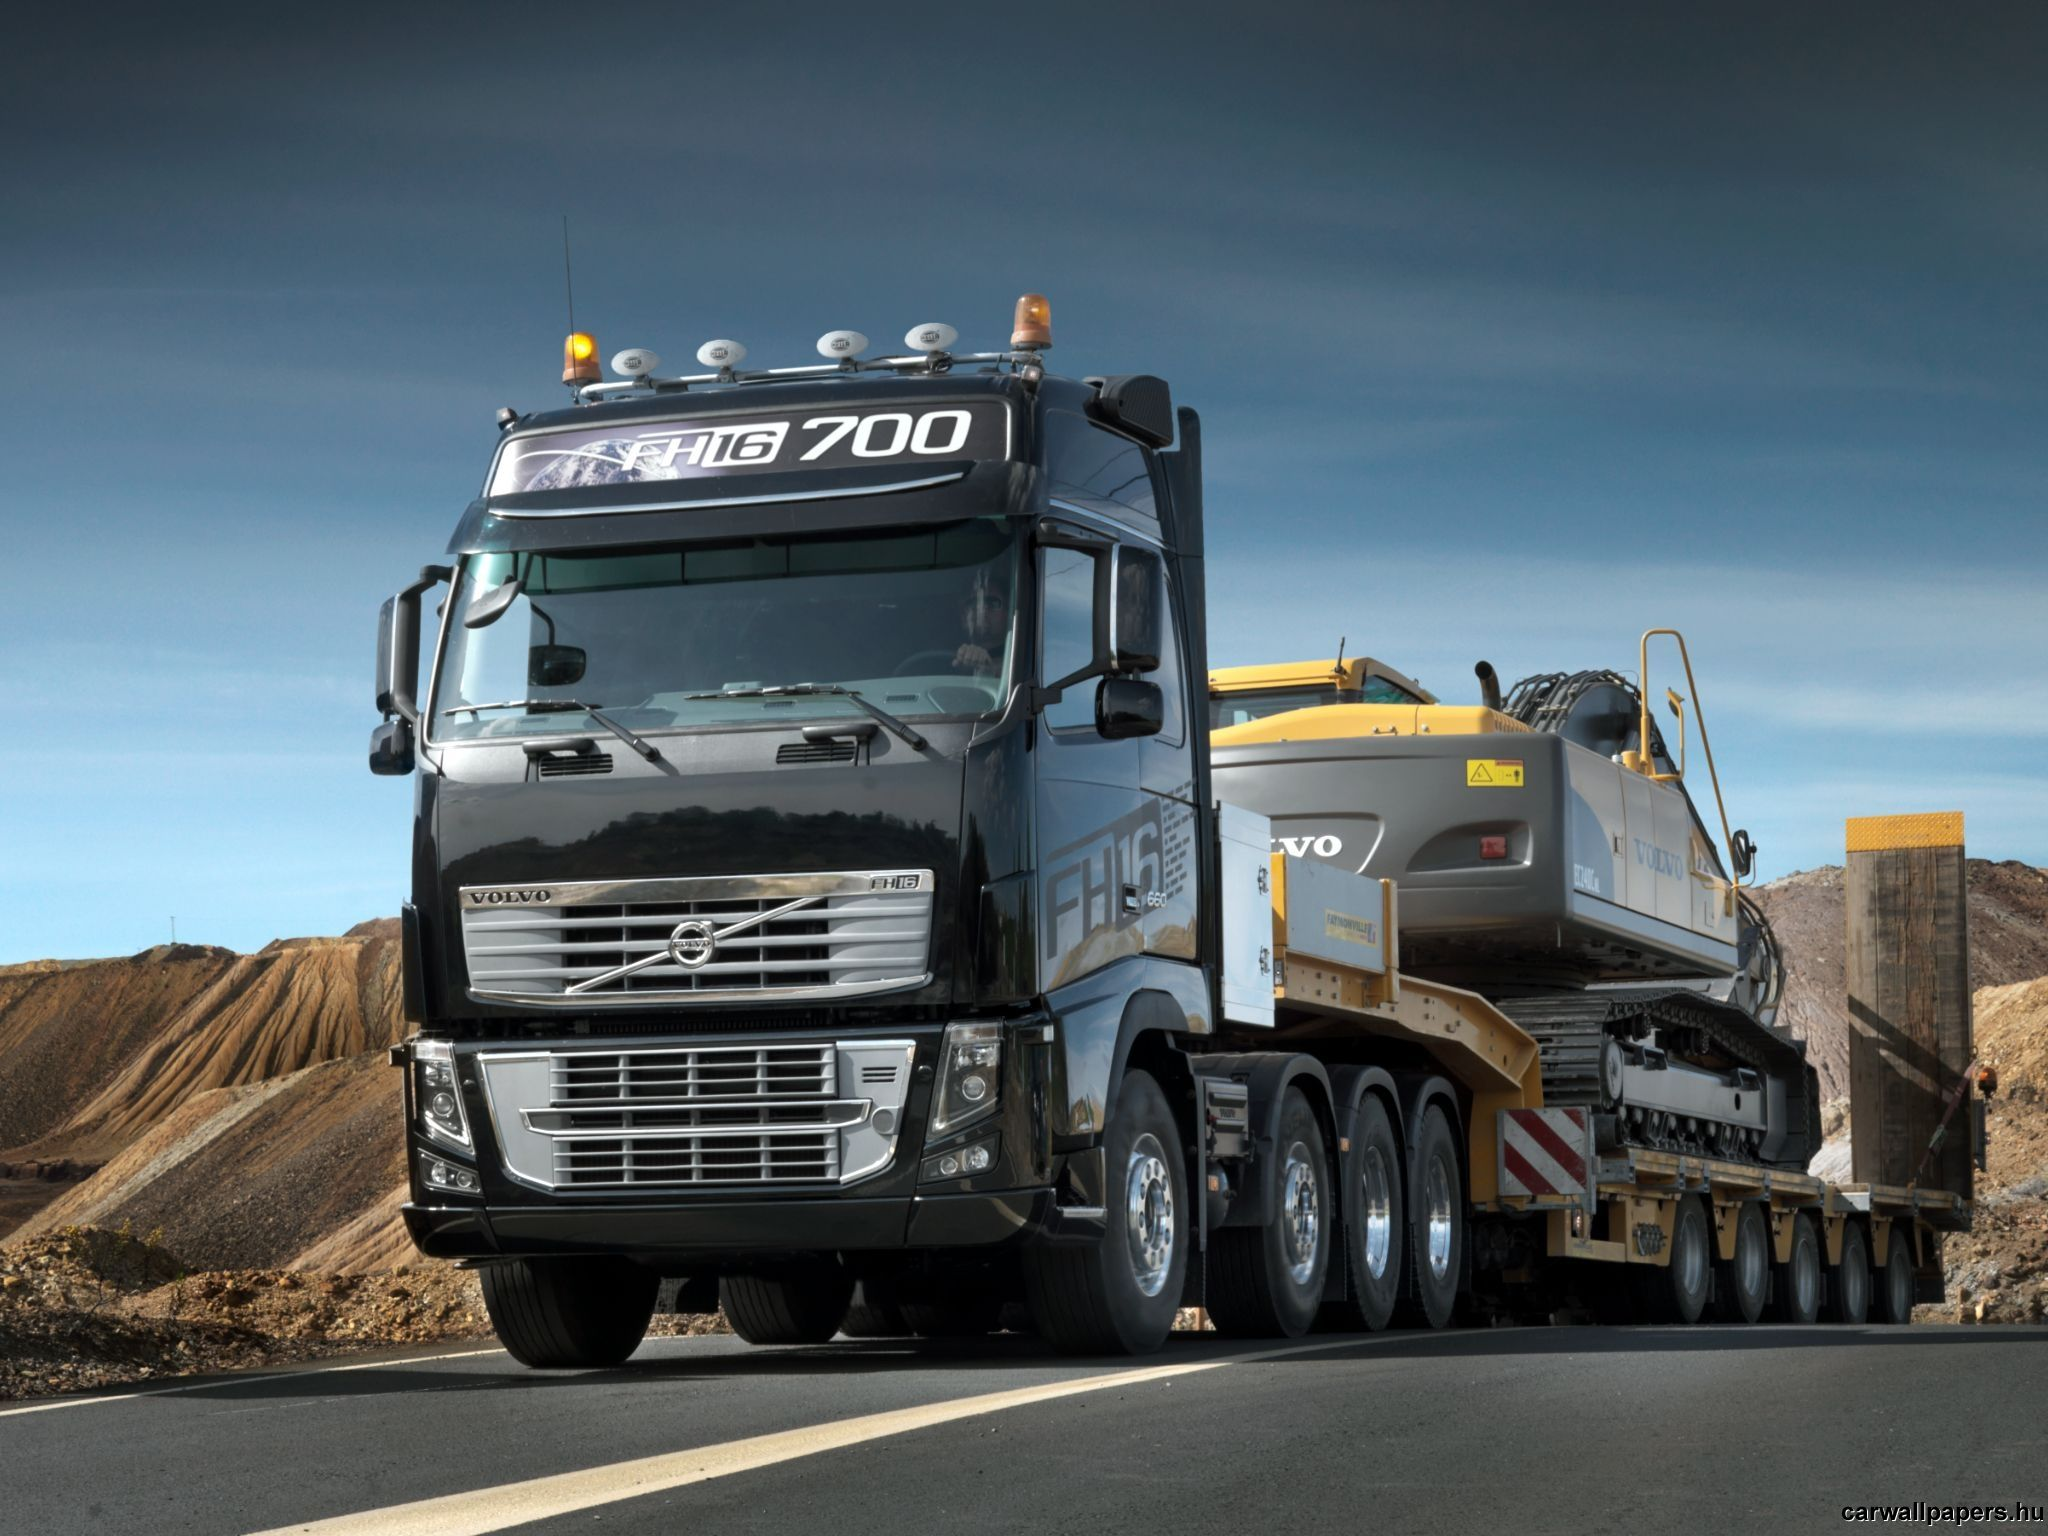 Volvo Fh 16 700 750 With A Heavy Equipment Transport Http Www